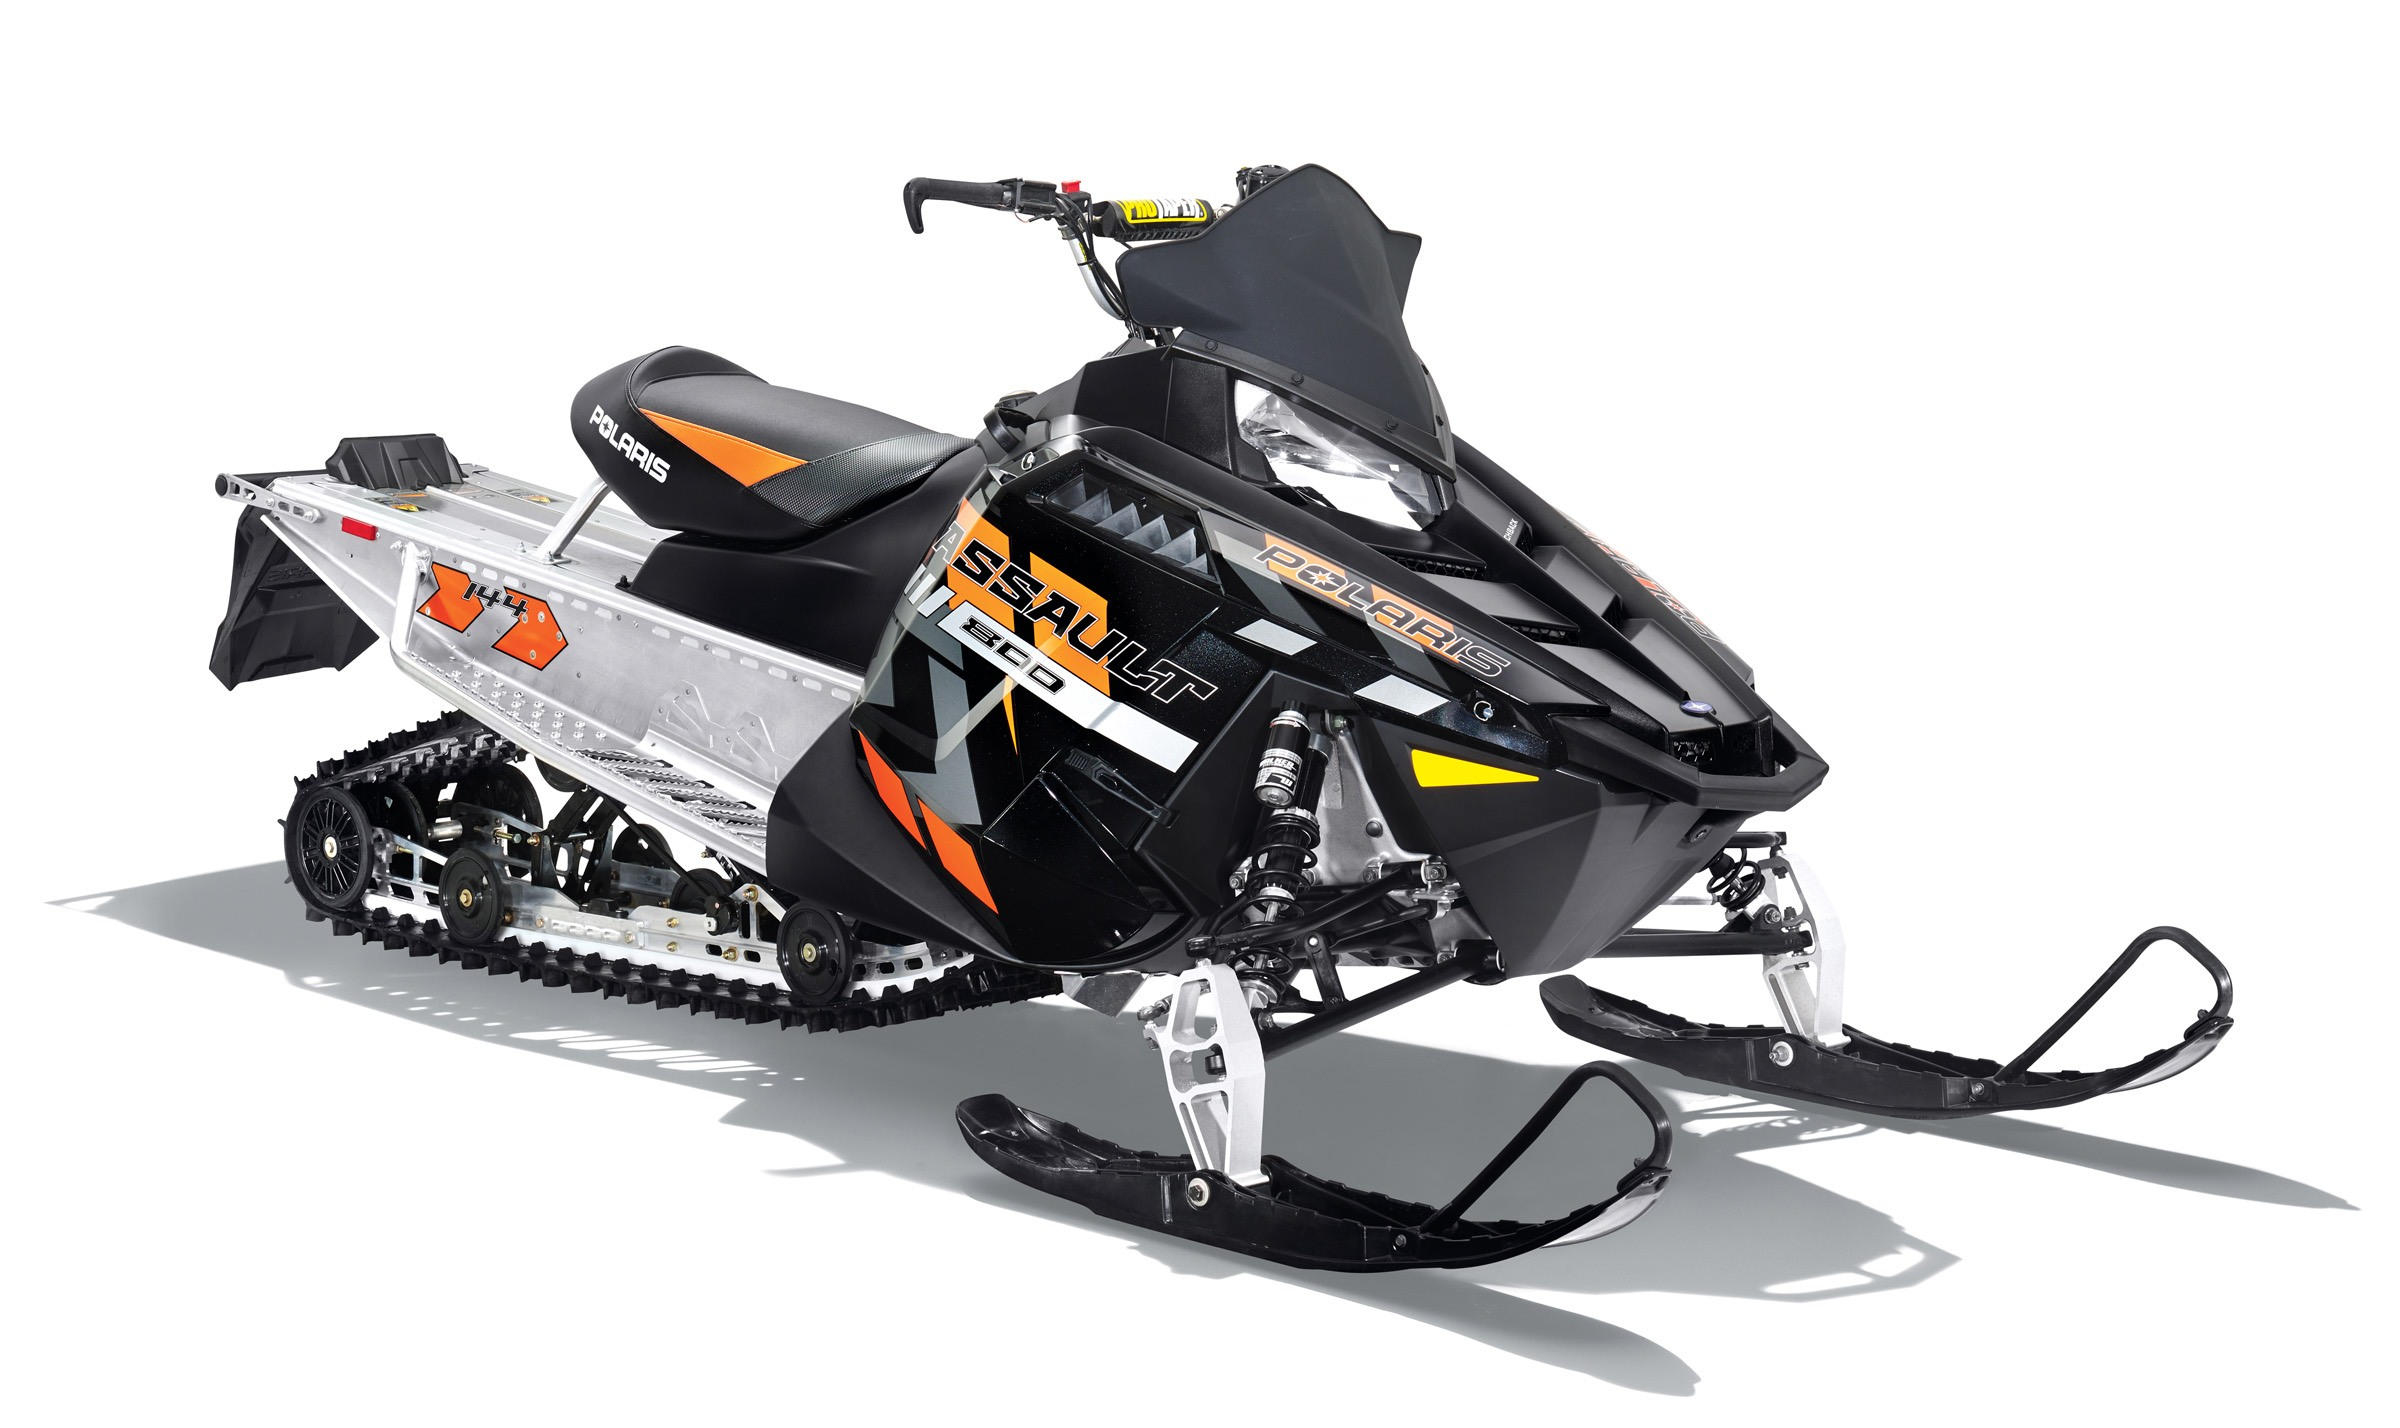 2016 Polaris 800 SWITCHBACK ASSAULT144 in El Campo, Texas